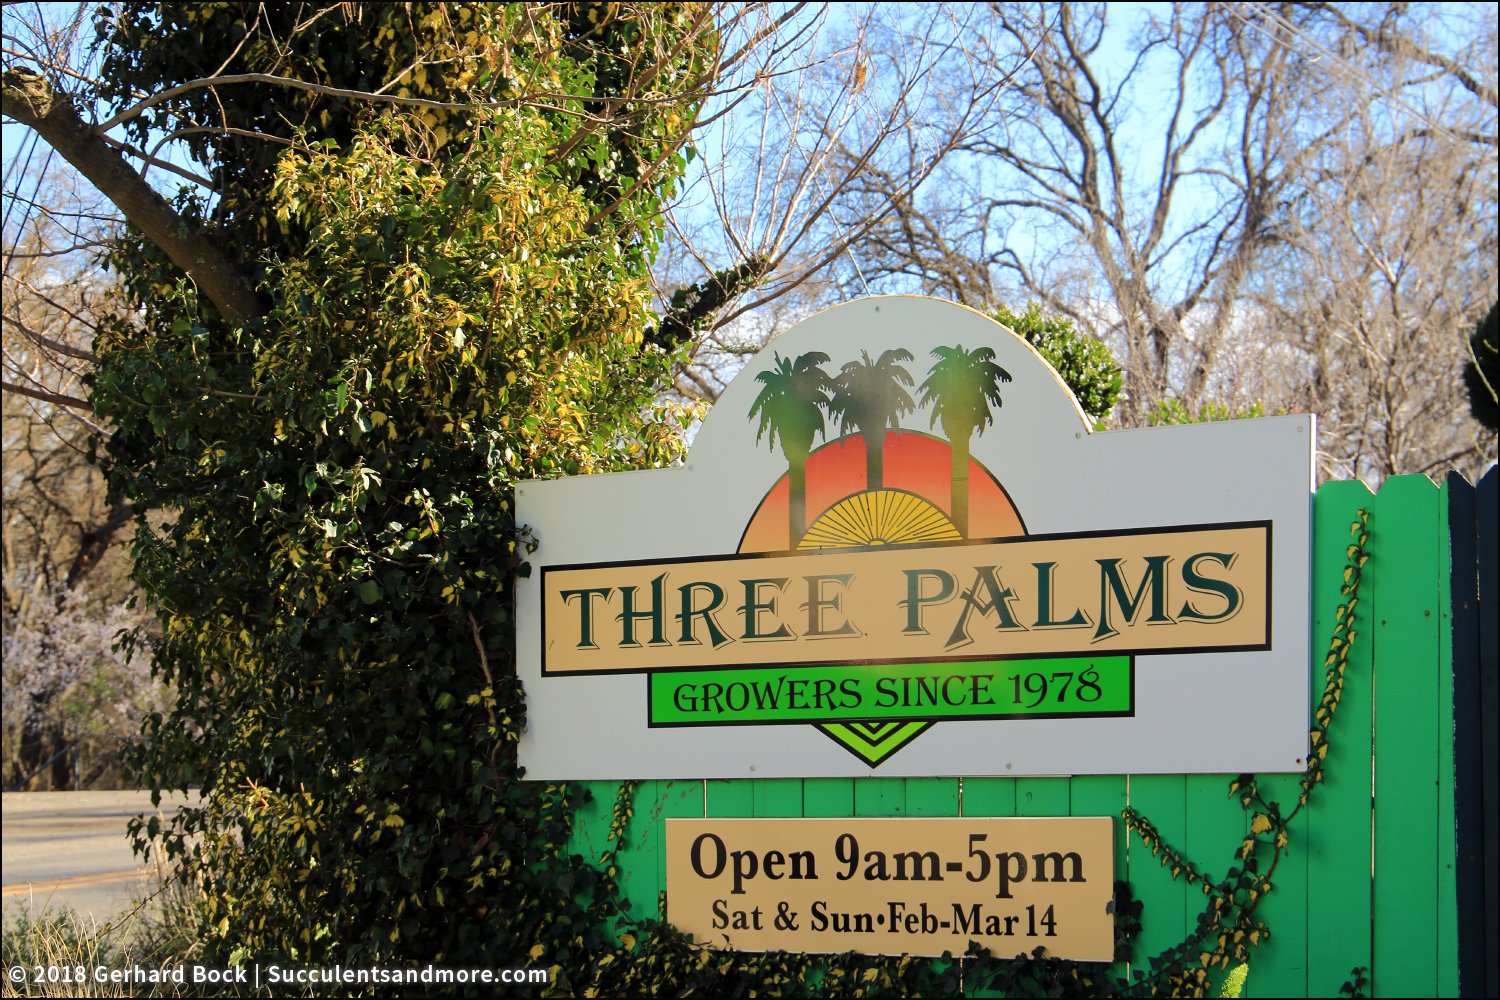 A Few Years Ago Phil Started To Bring In Plants From Mountain States Whole Nursery Glendale Arizona Expand Three Palms Water Wise Selections